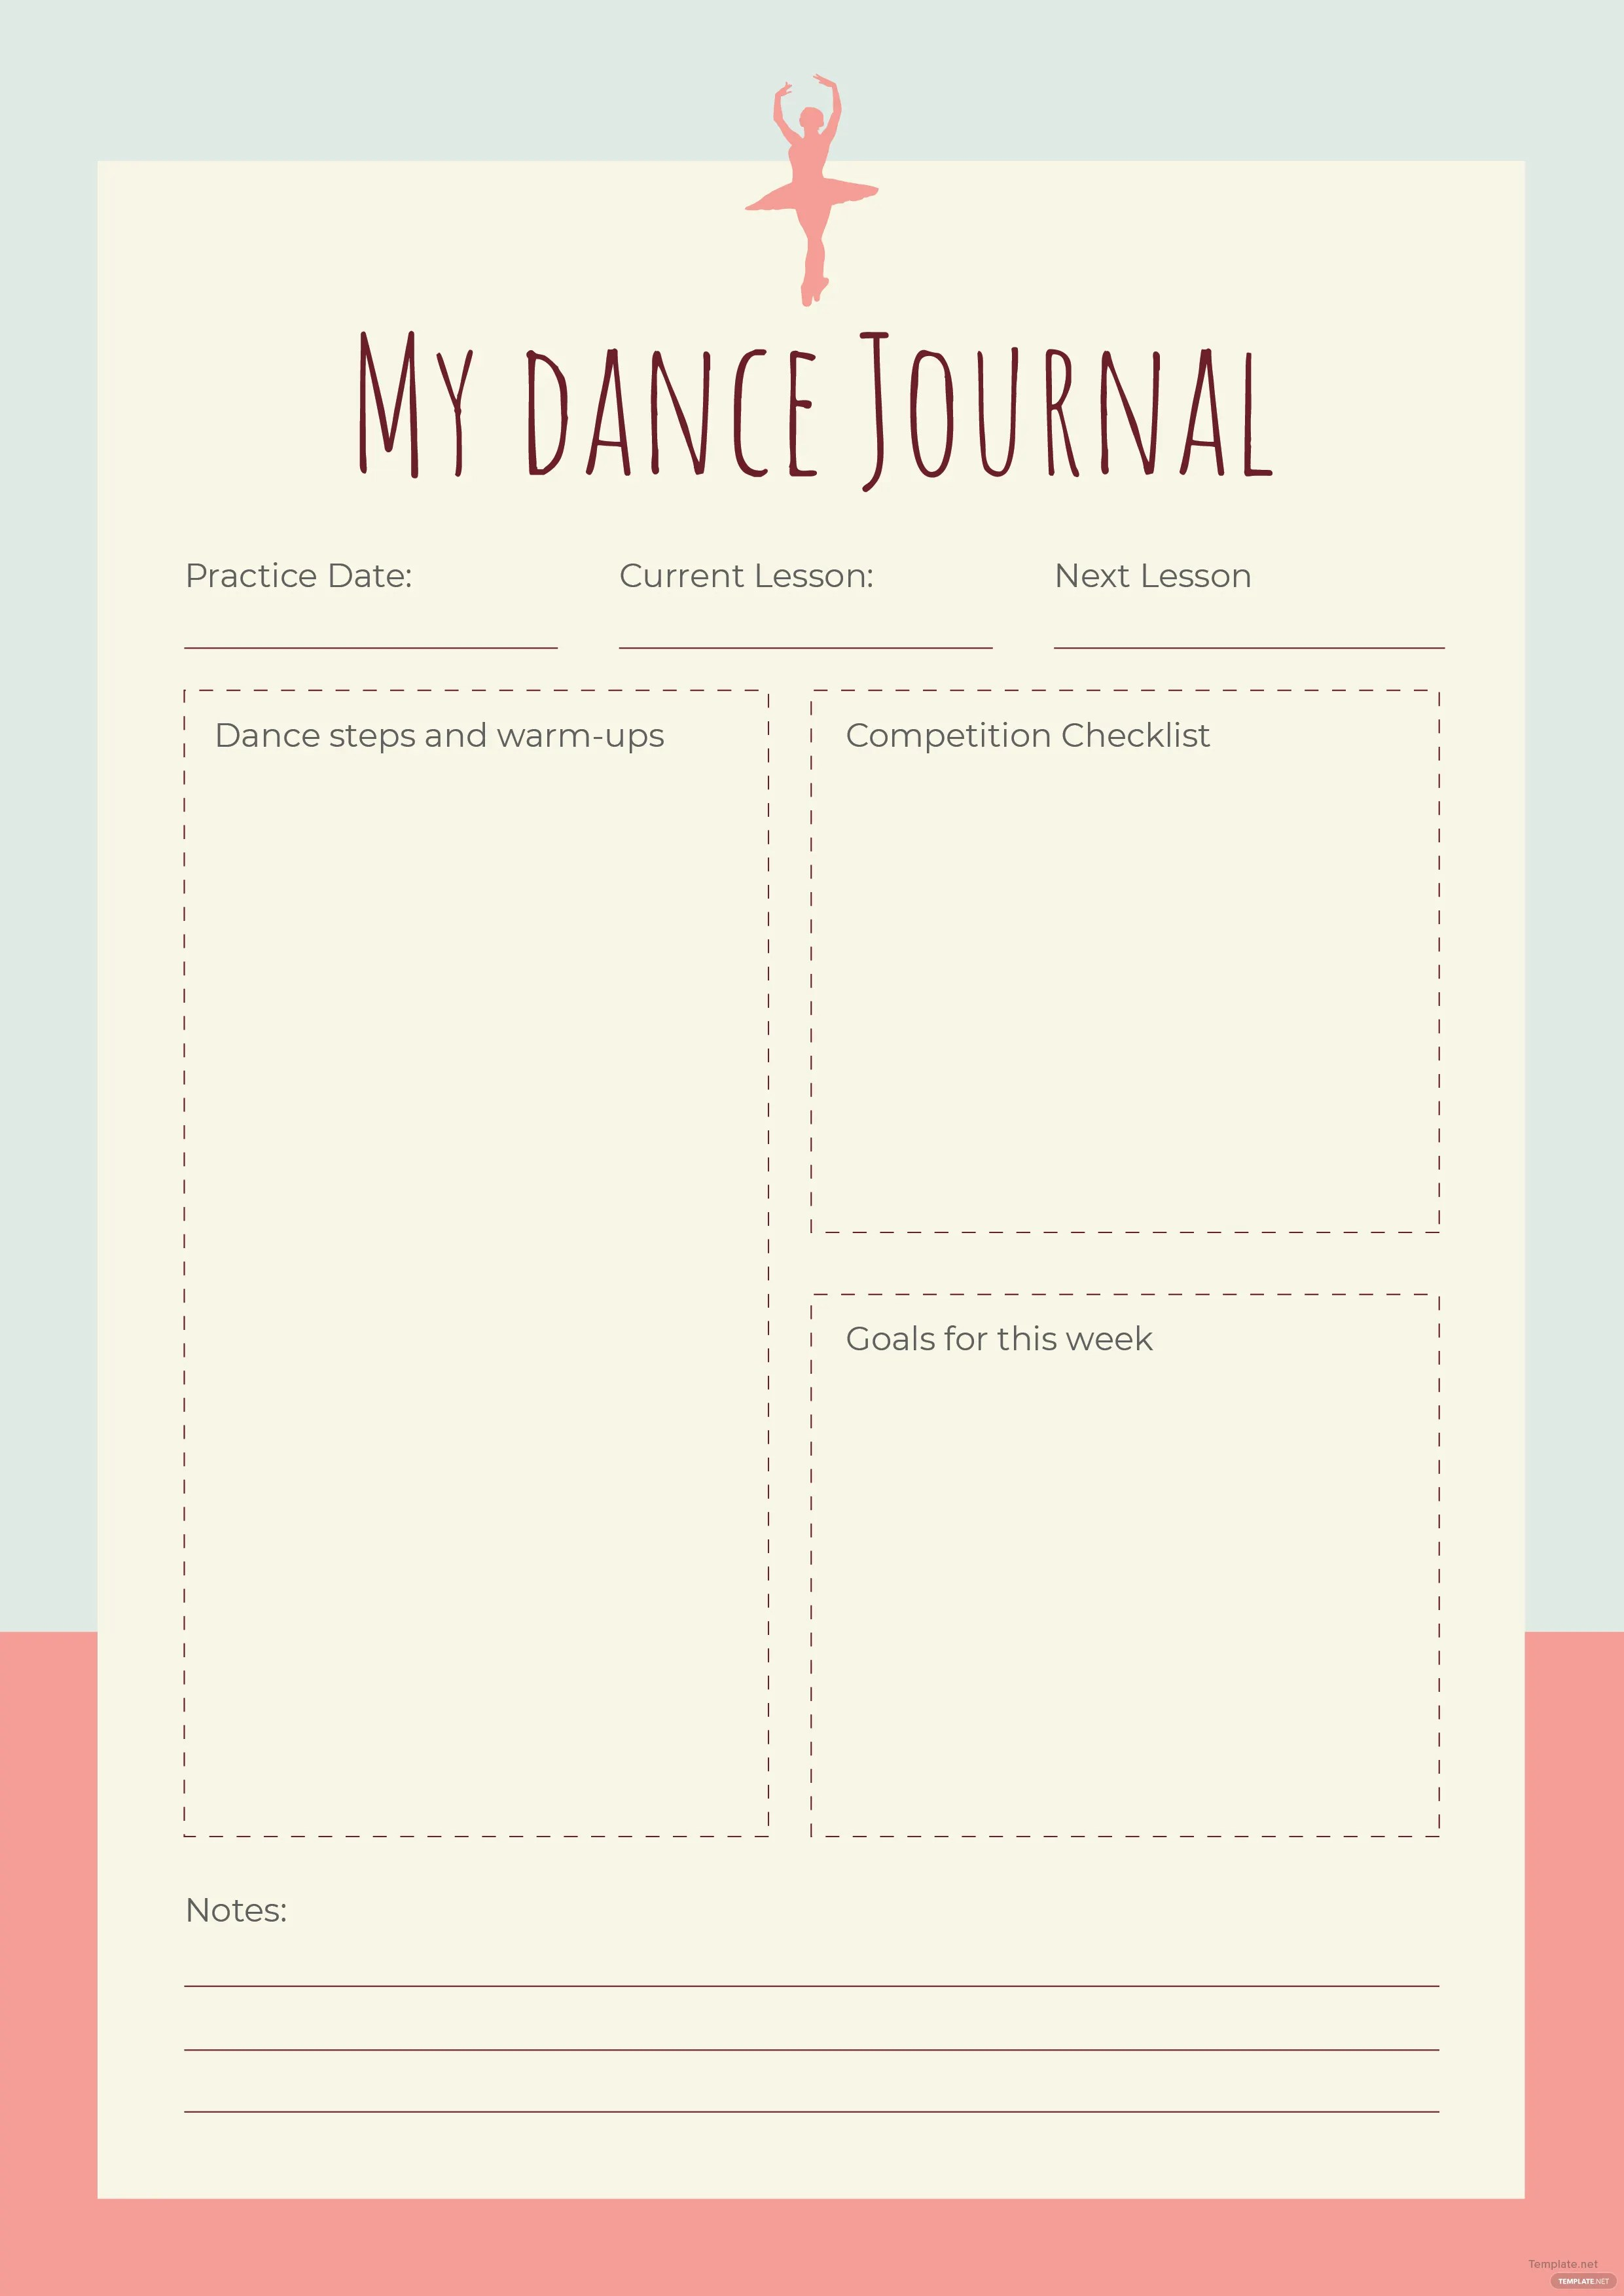 Free Dance Journal Template In Adobe Photoshop